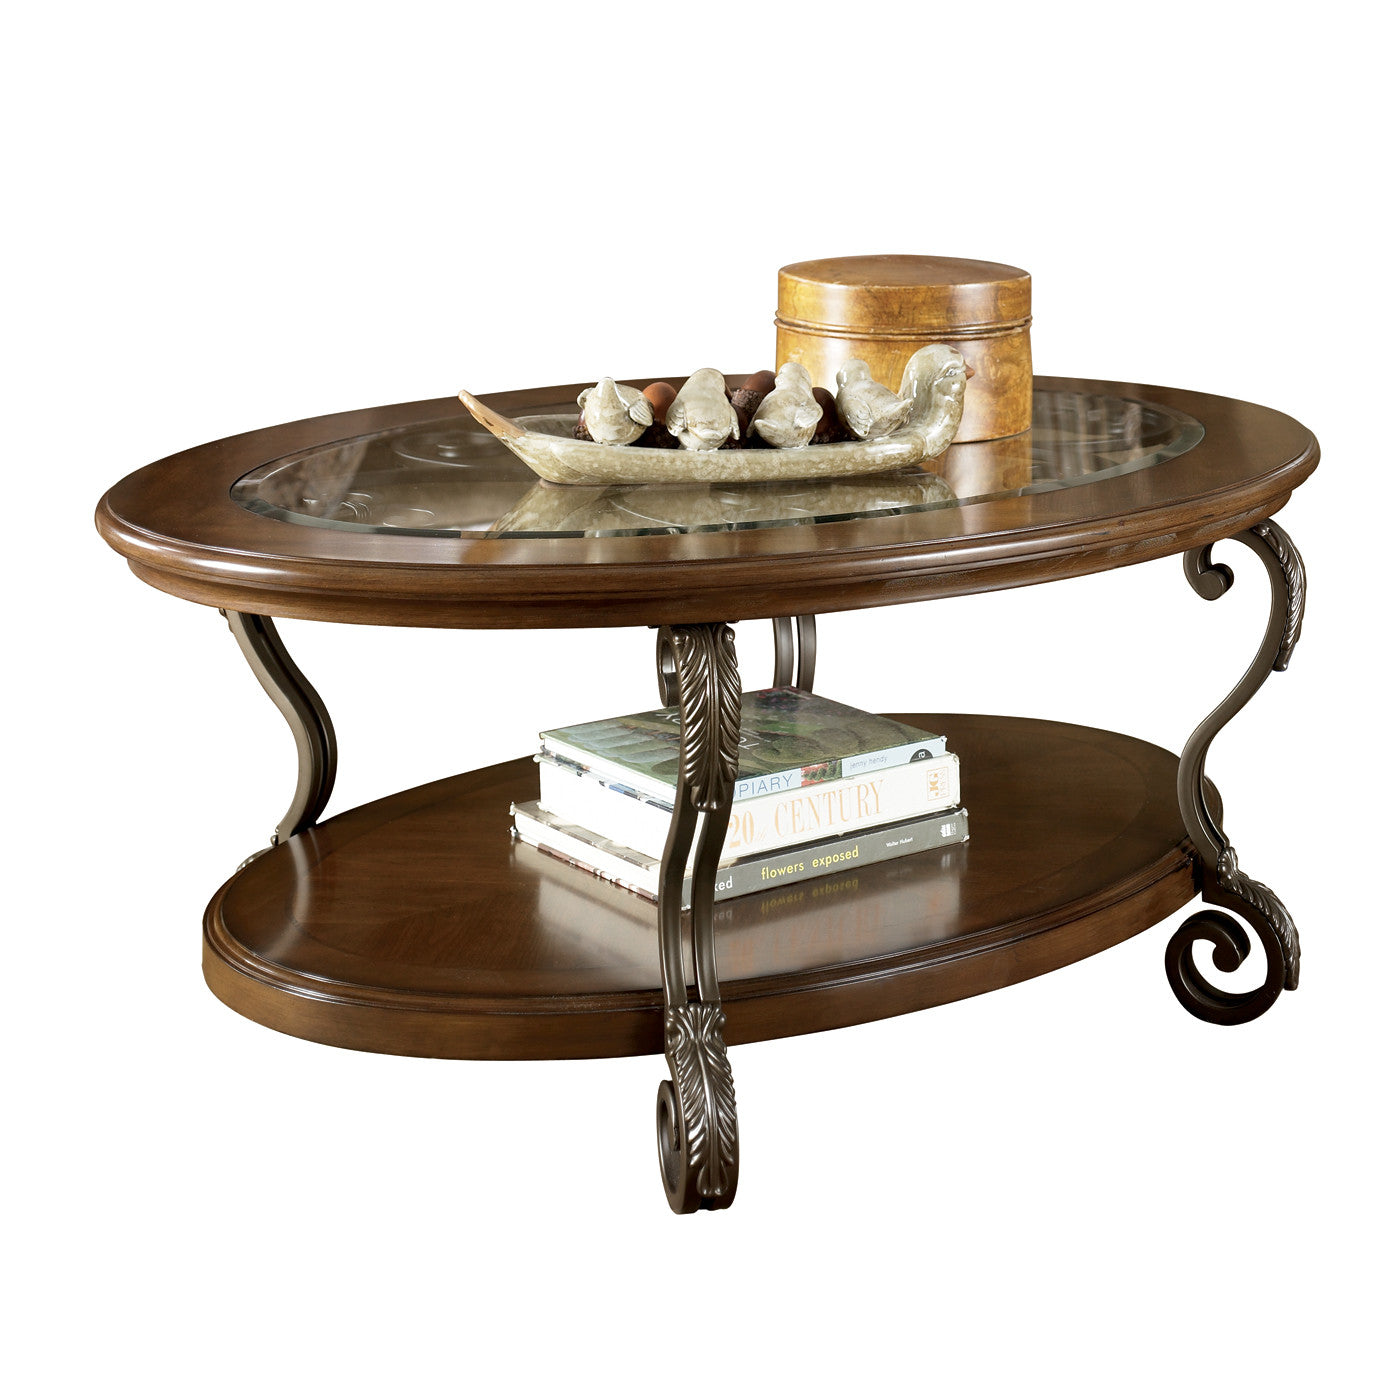 T517 0 Ashley Furniture Nestor: Nestor Oval Coffee Table